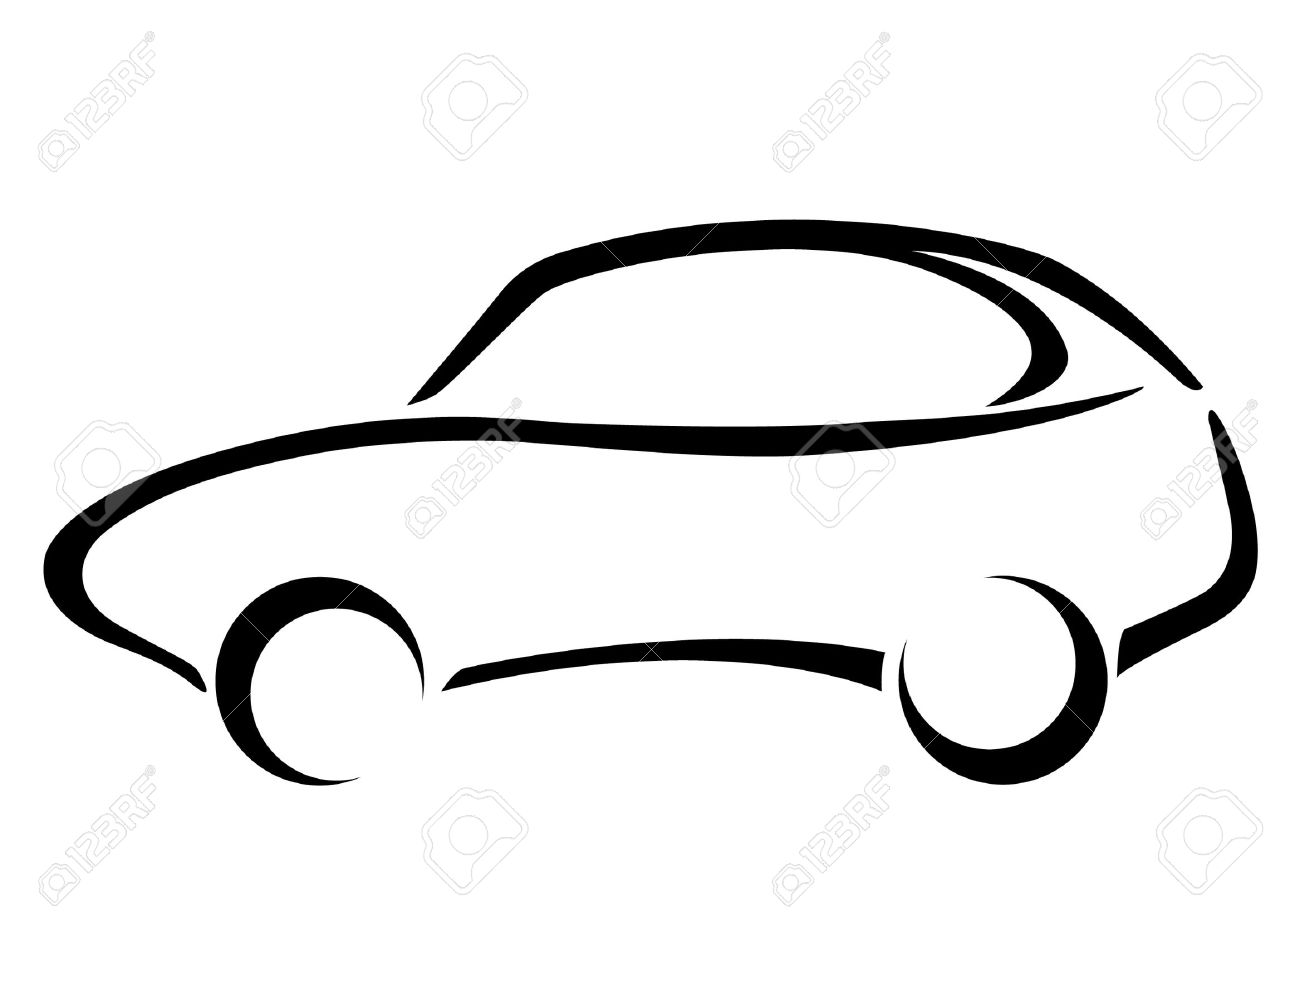 car silhouette on a white background royalty free cliparts